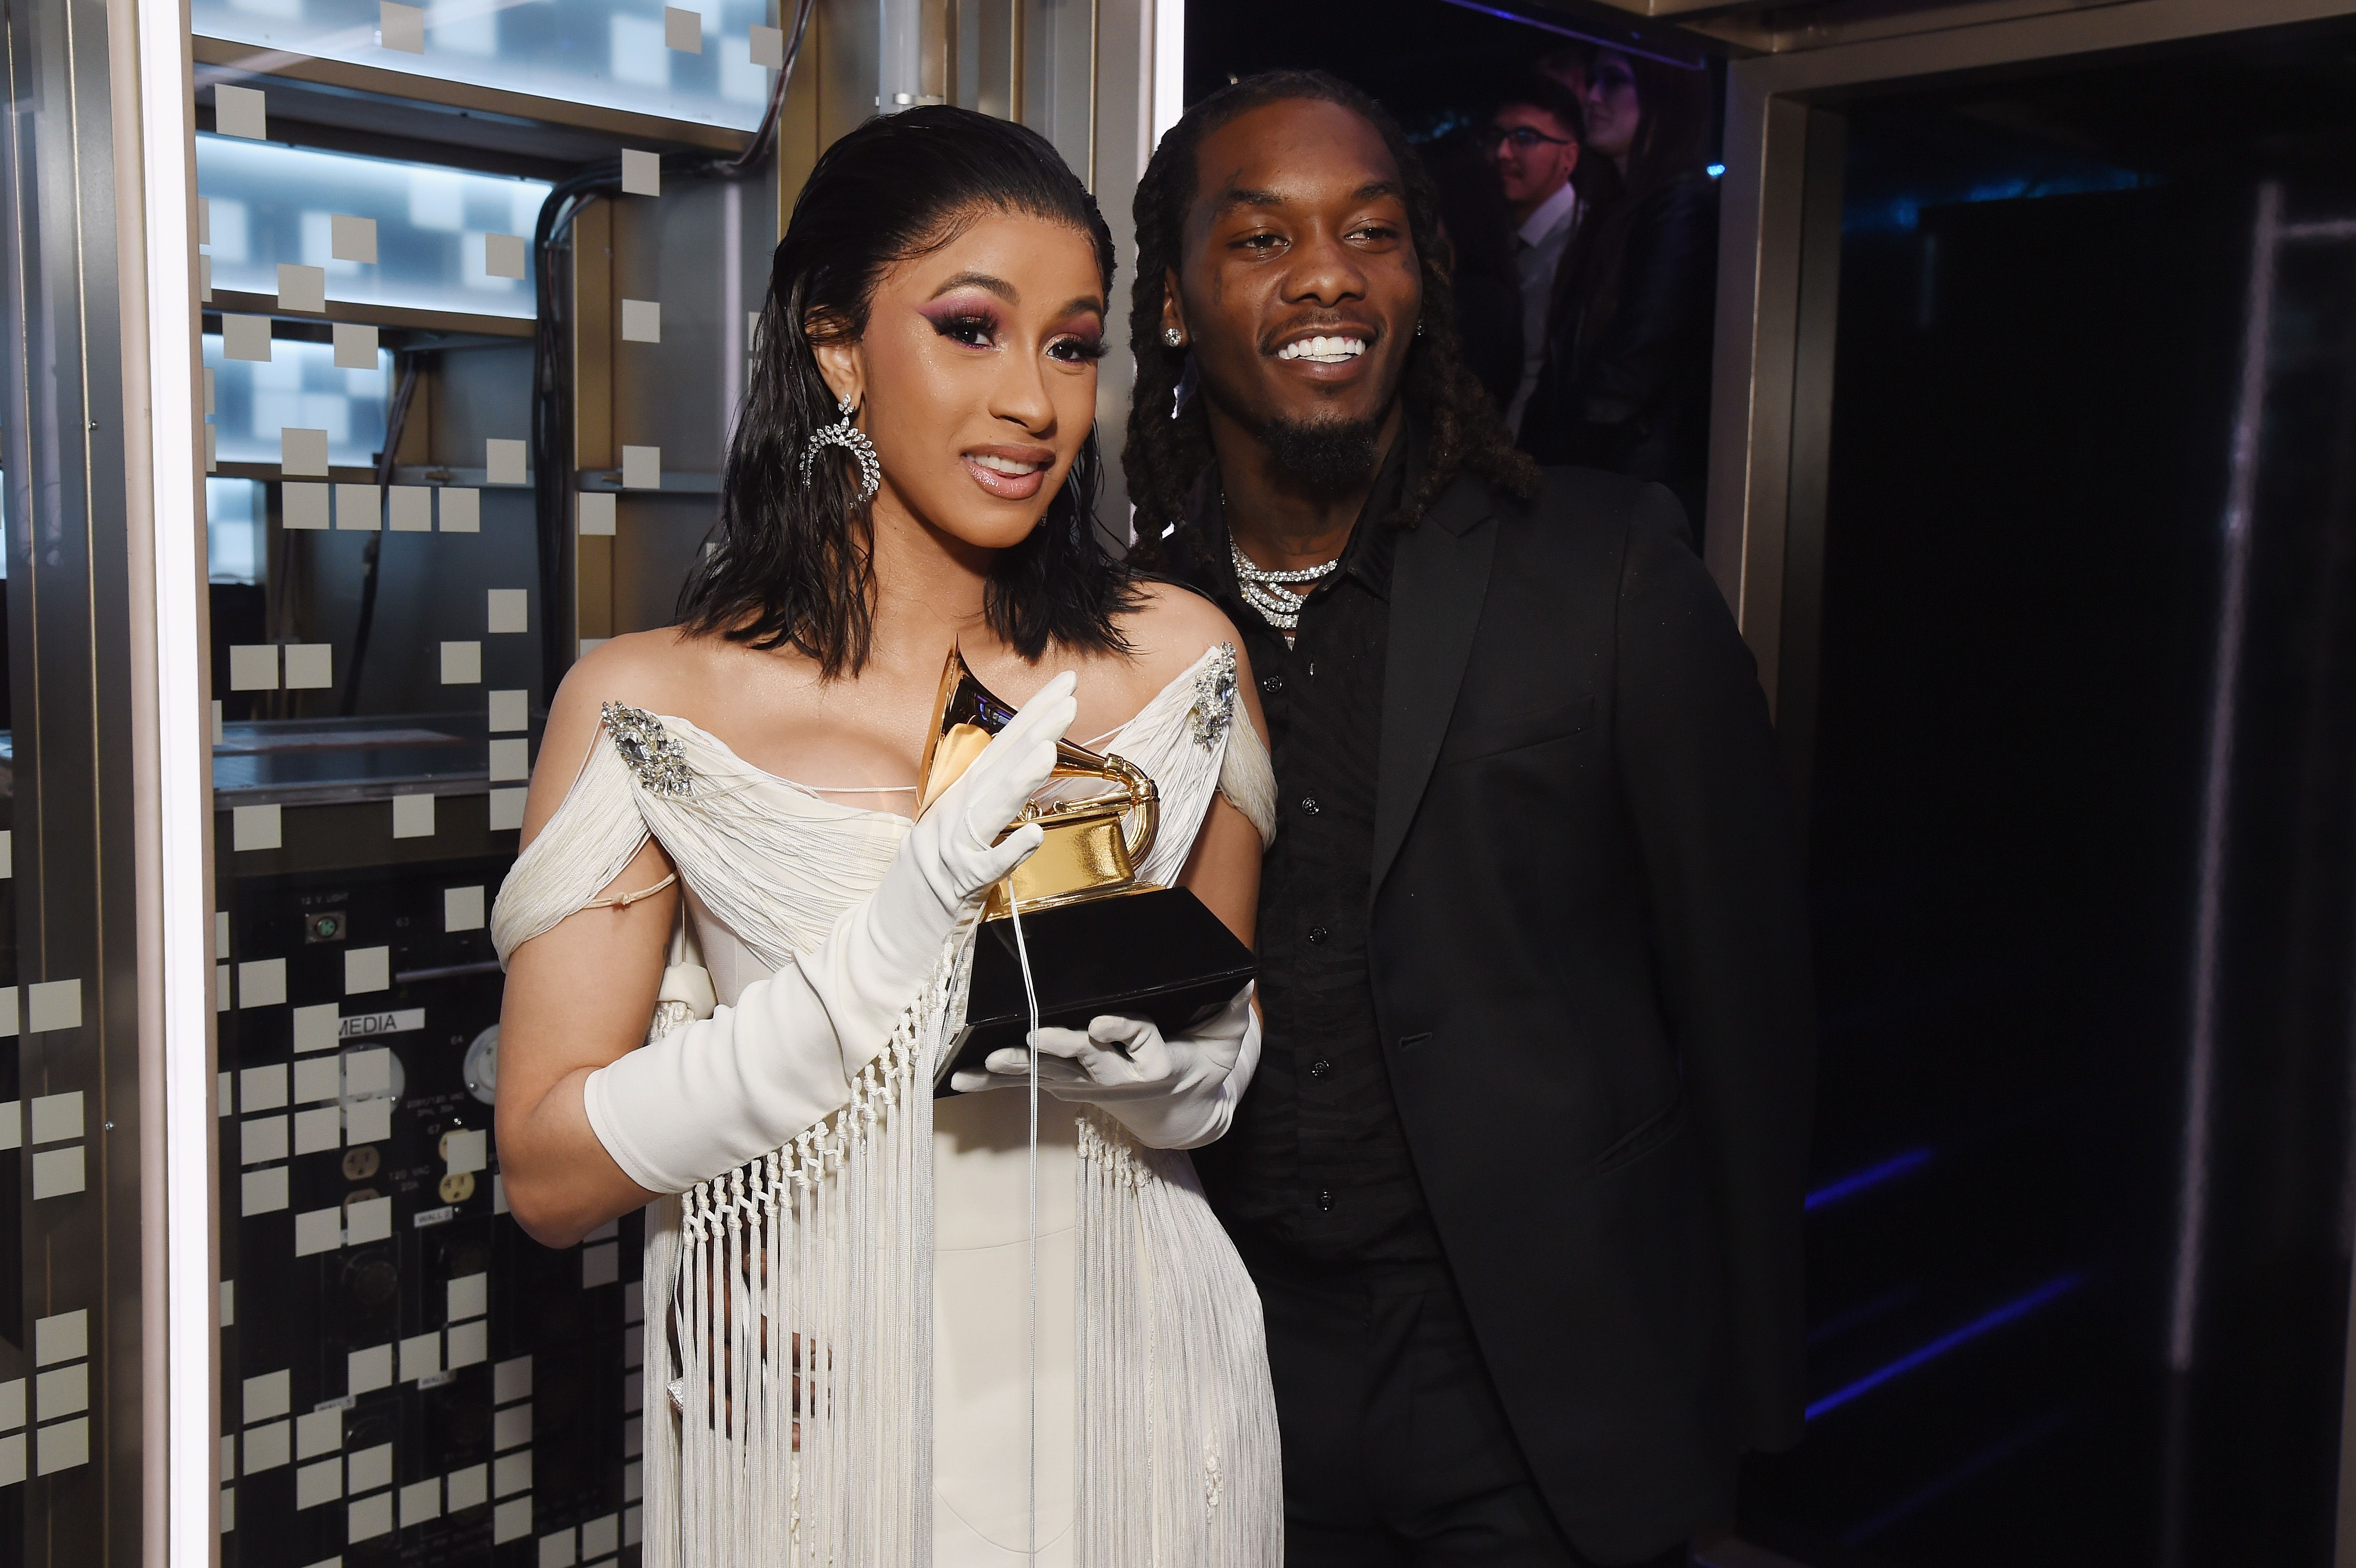 Video Of Cardi B Giving Birth To Daughter Kulture Shared By Offset